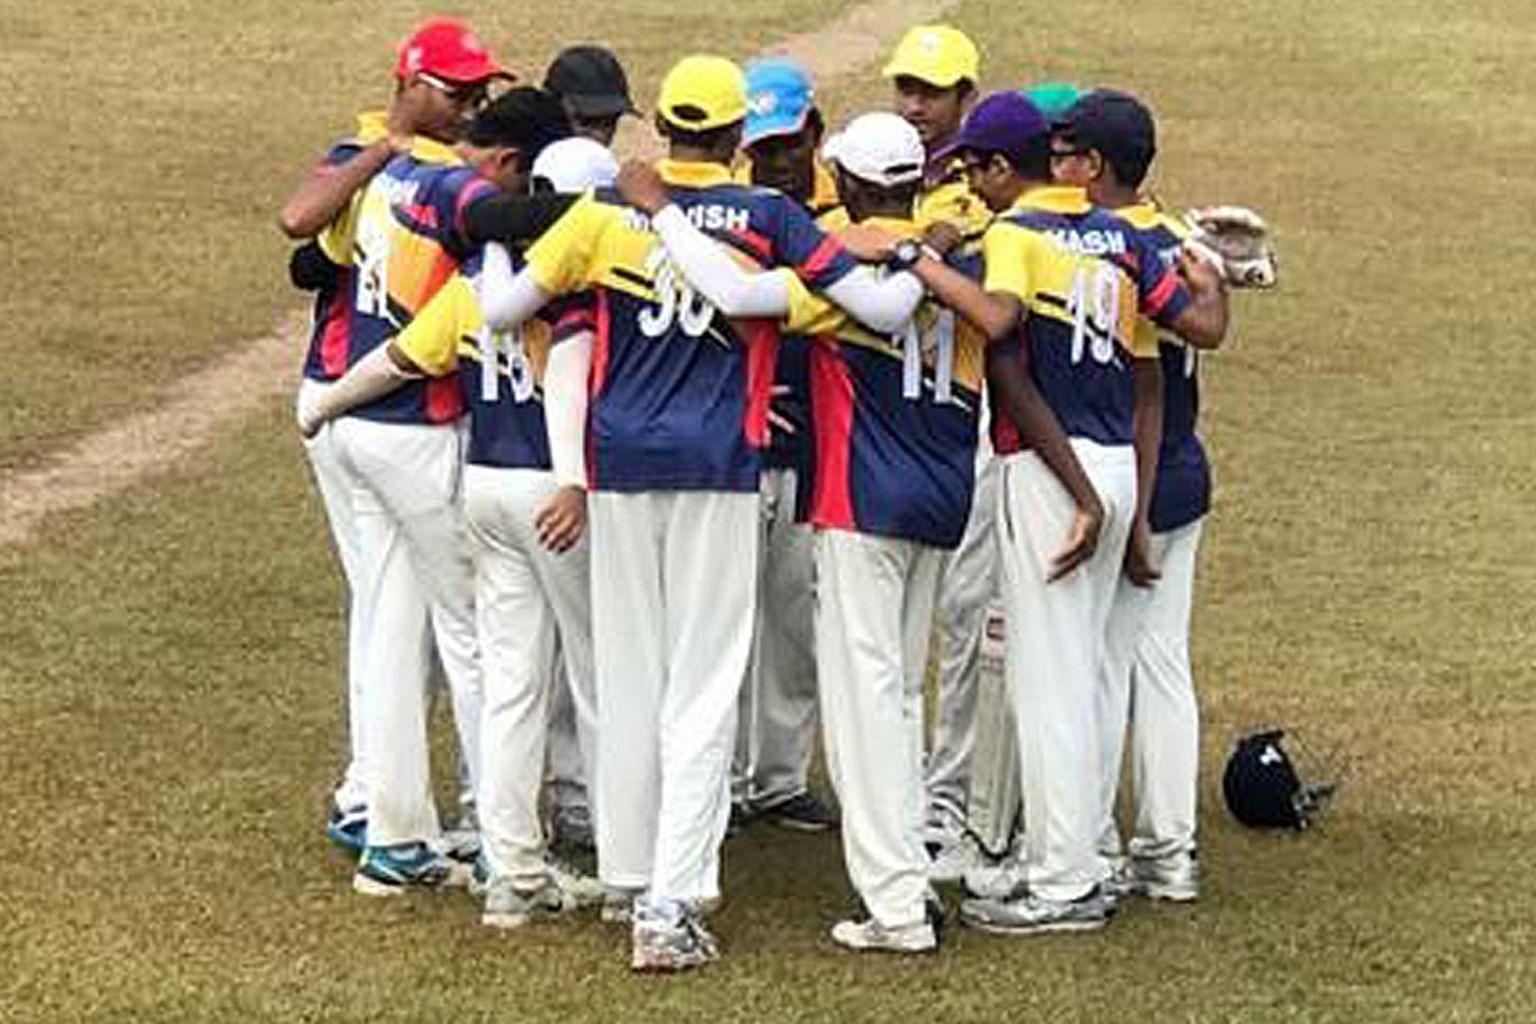 Anglo-Chinese School (Independent) retained their Schools National B Division cricket title after defeating Raffles Institution by eight wickets in yesterday's final at Dempsey cricket field. Neil Karnik of ACS (I) claimed five wickets for just 11 ru